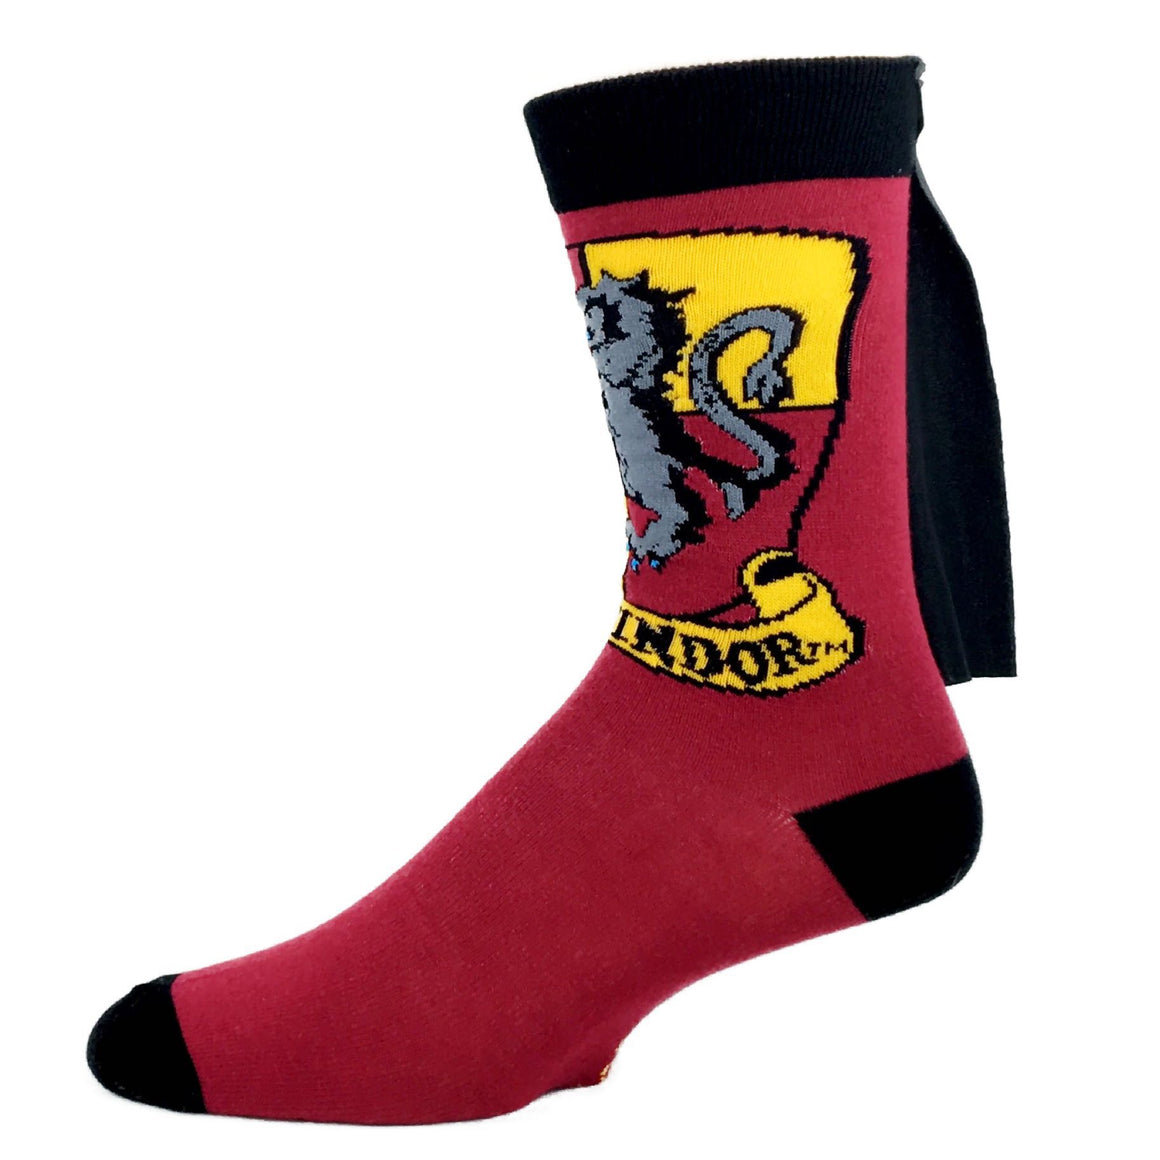 Socks - Harry Potter Gryffindor 3D Caped Socks